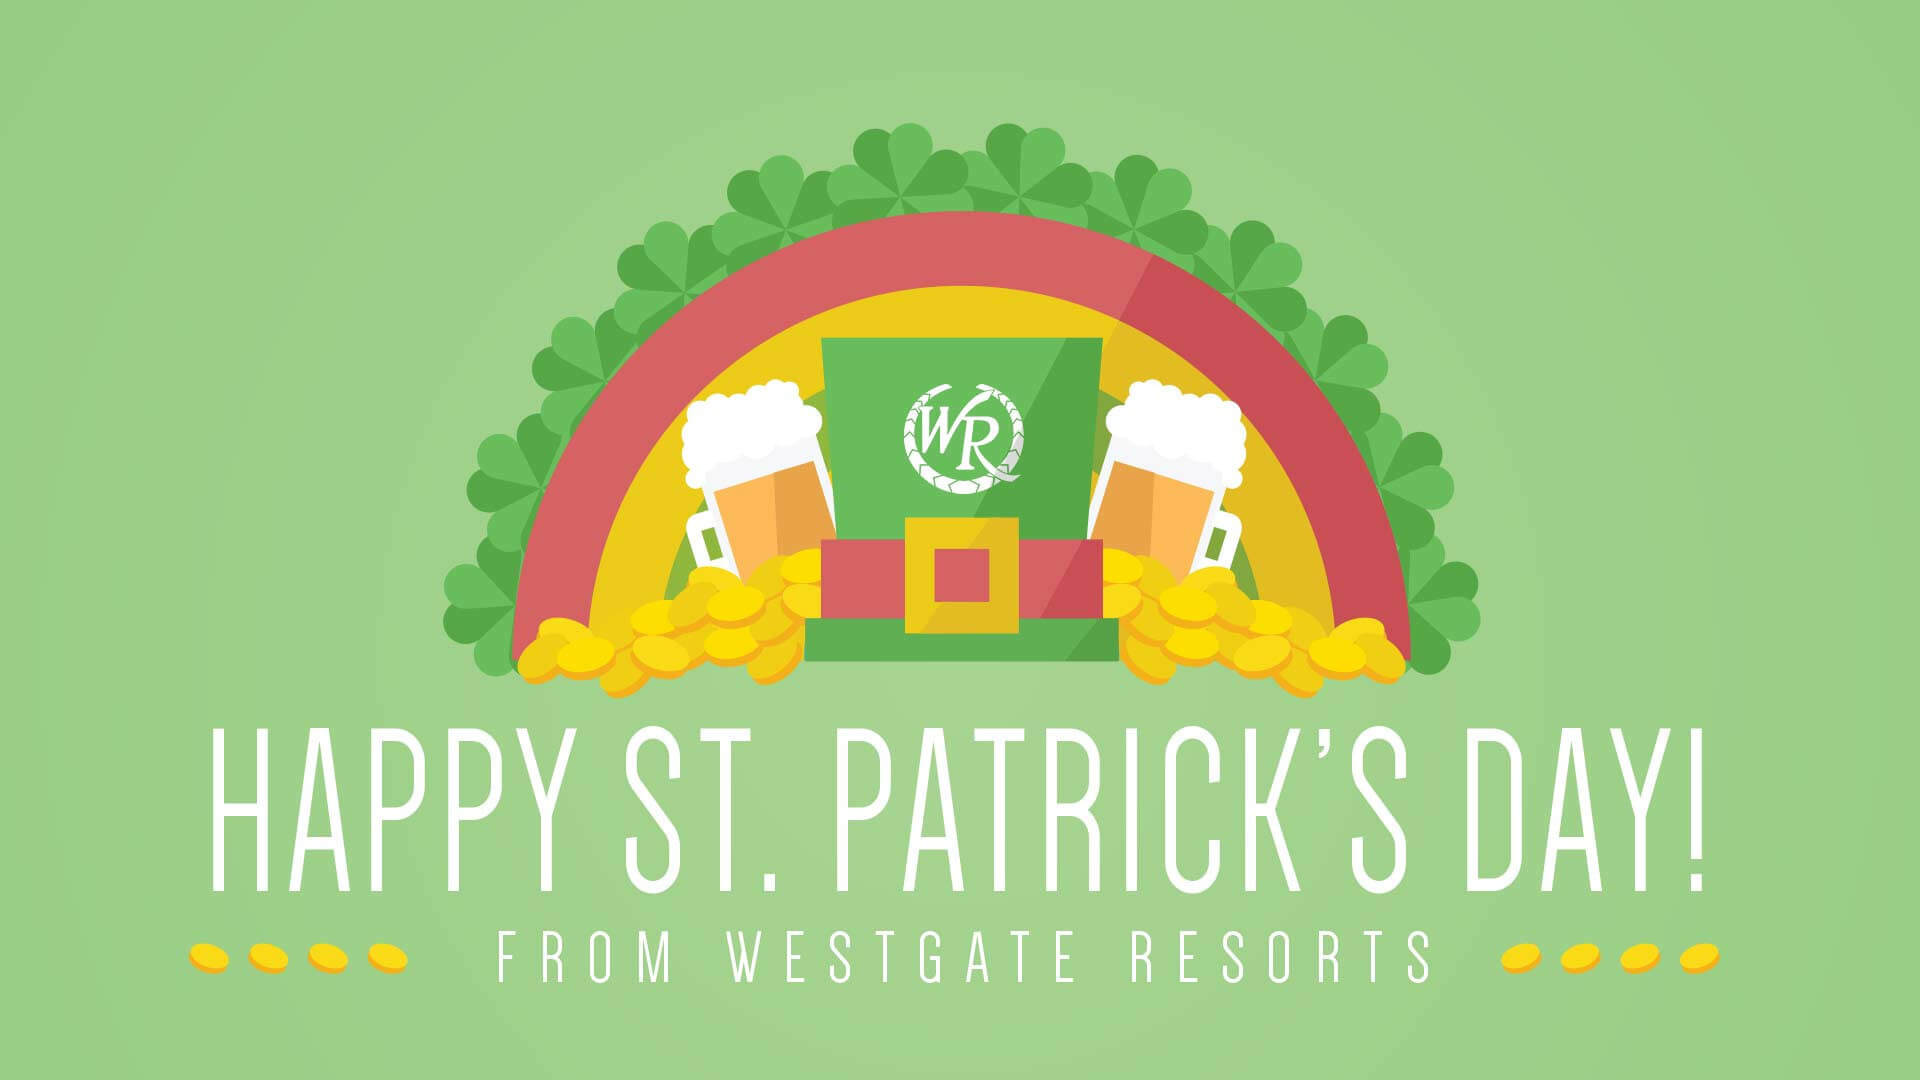 St. Patrick's Day Deals in 2019 | Holiday Travel Discounts | Westgate Resorts